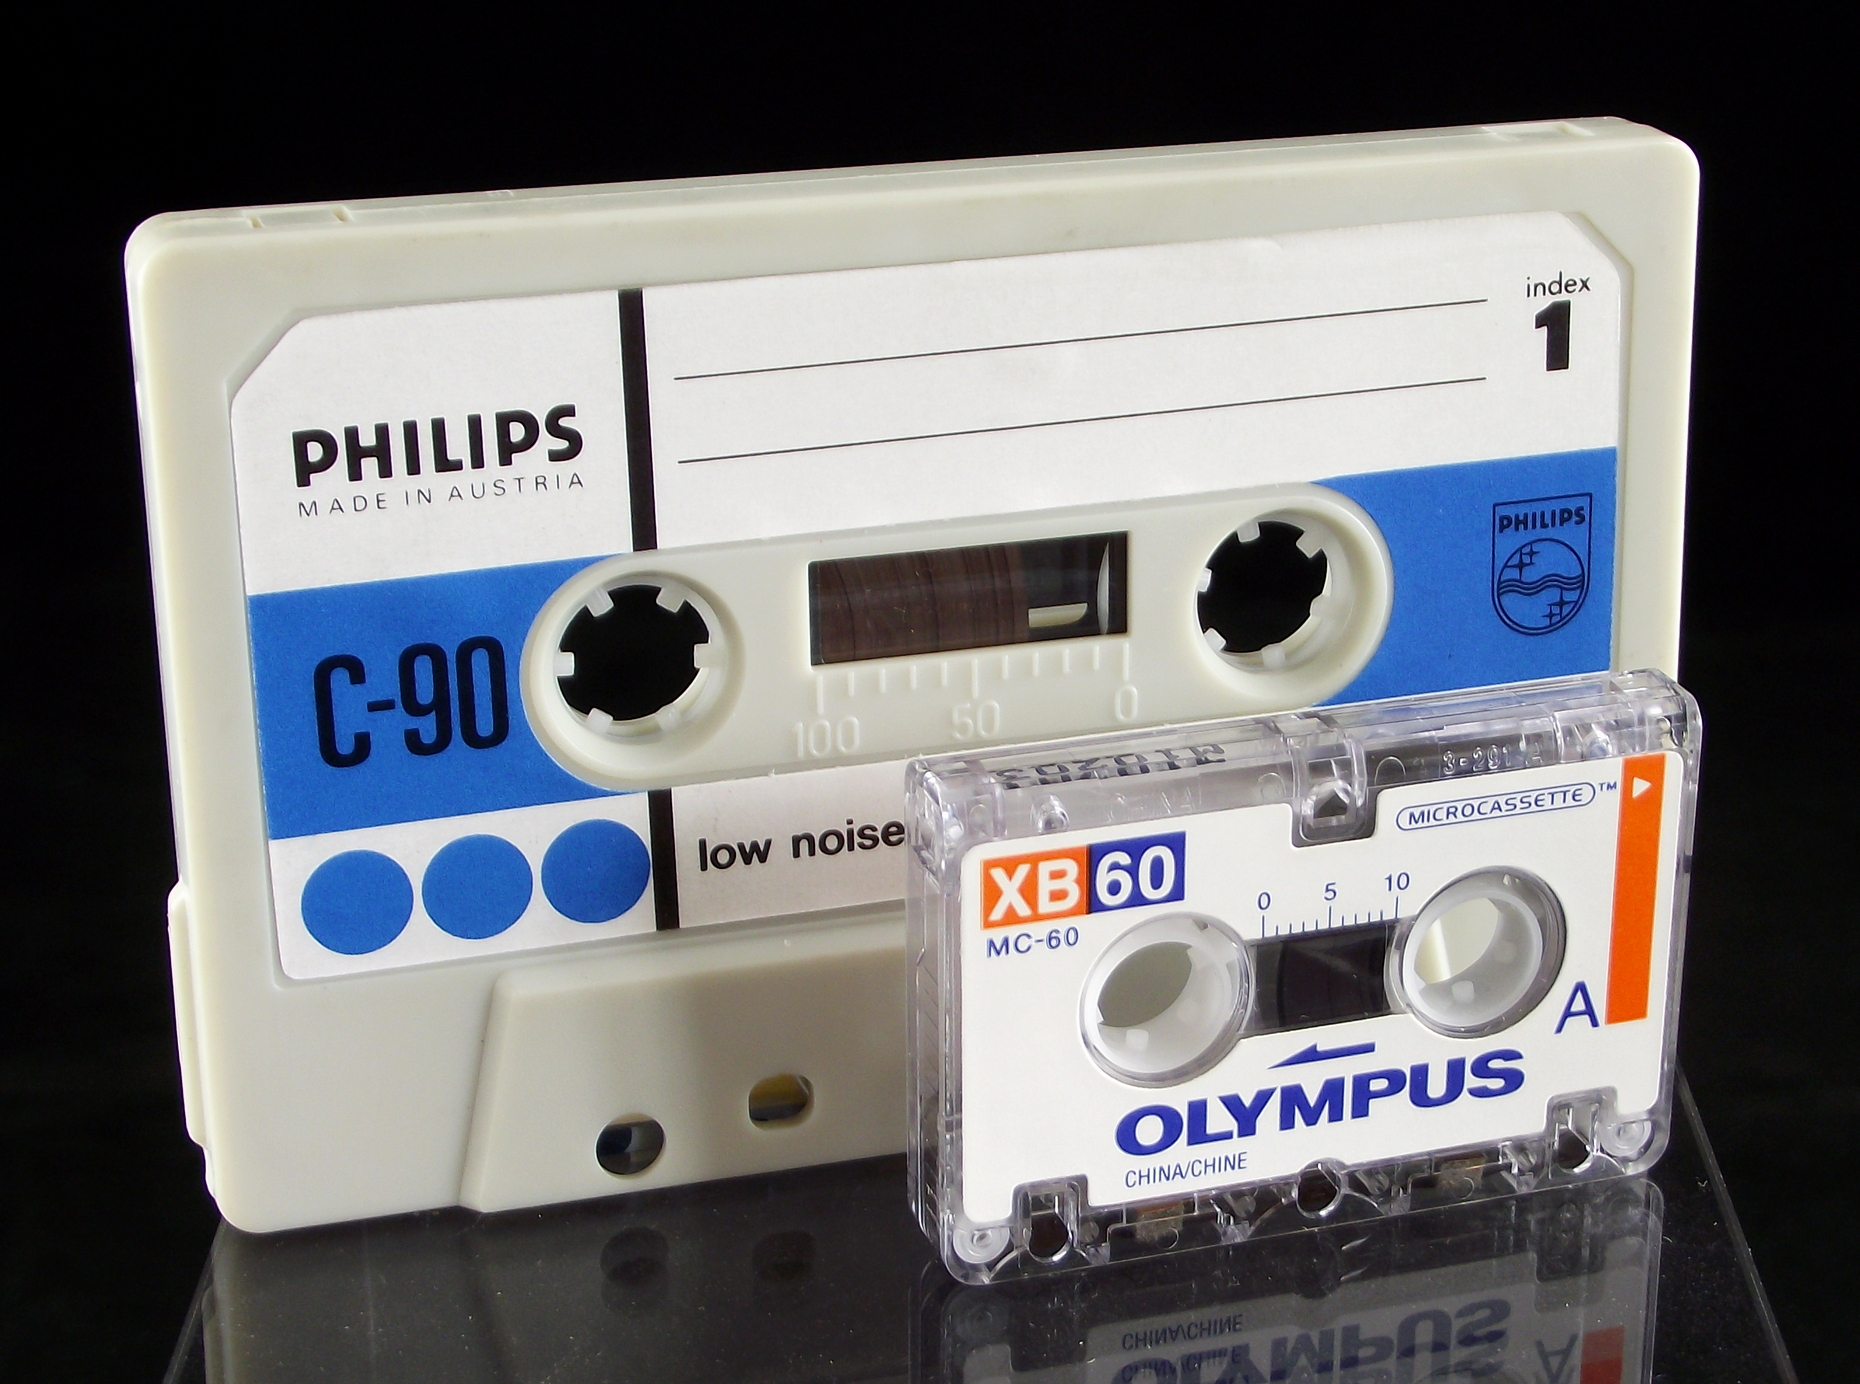 Compact Cassette and Microcassette